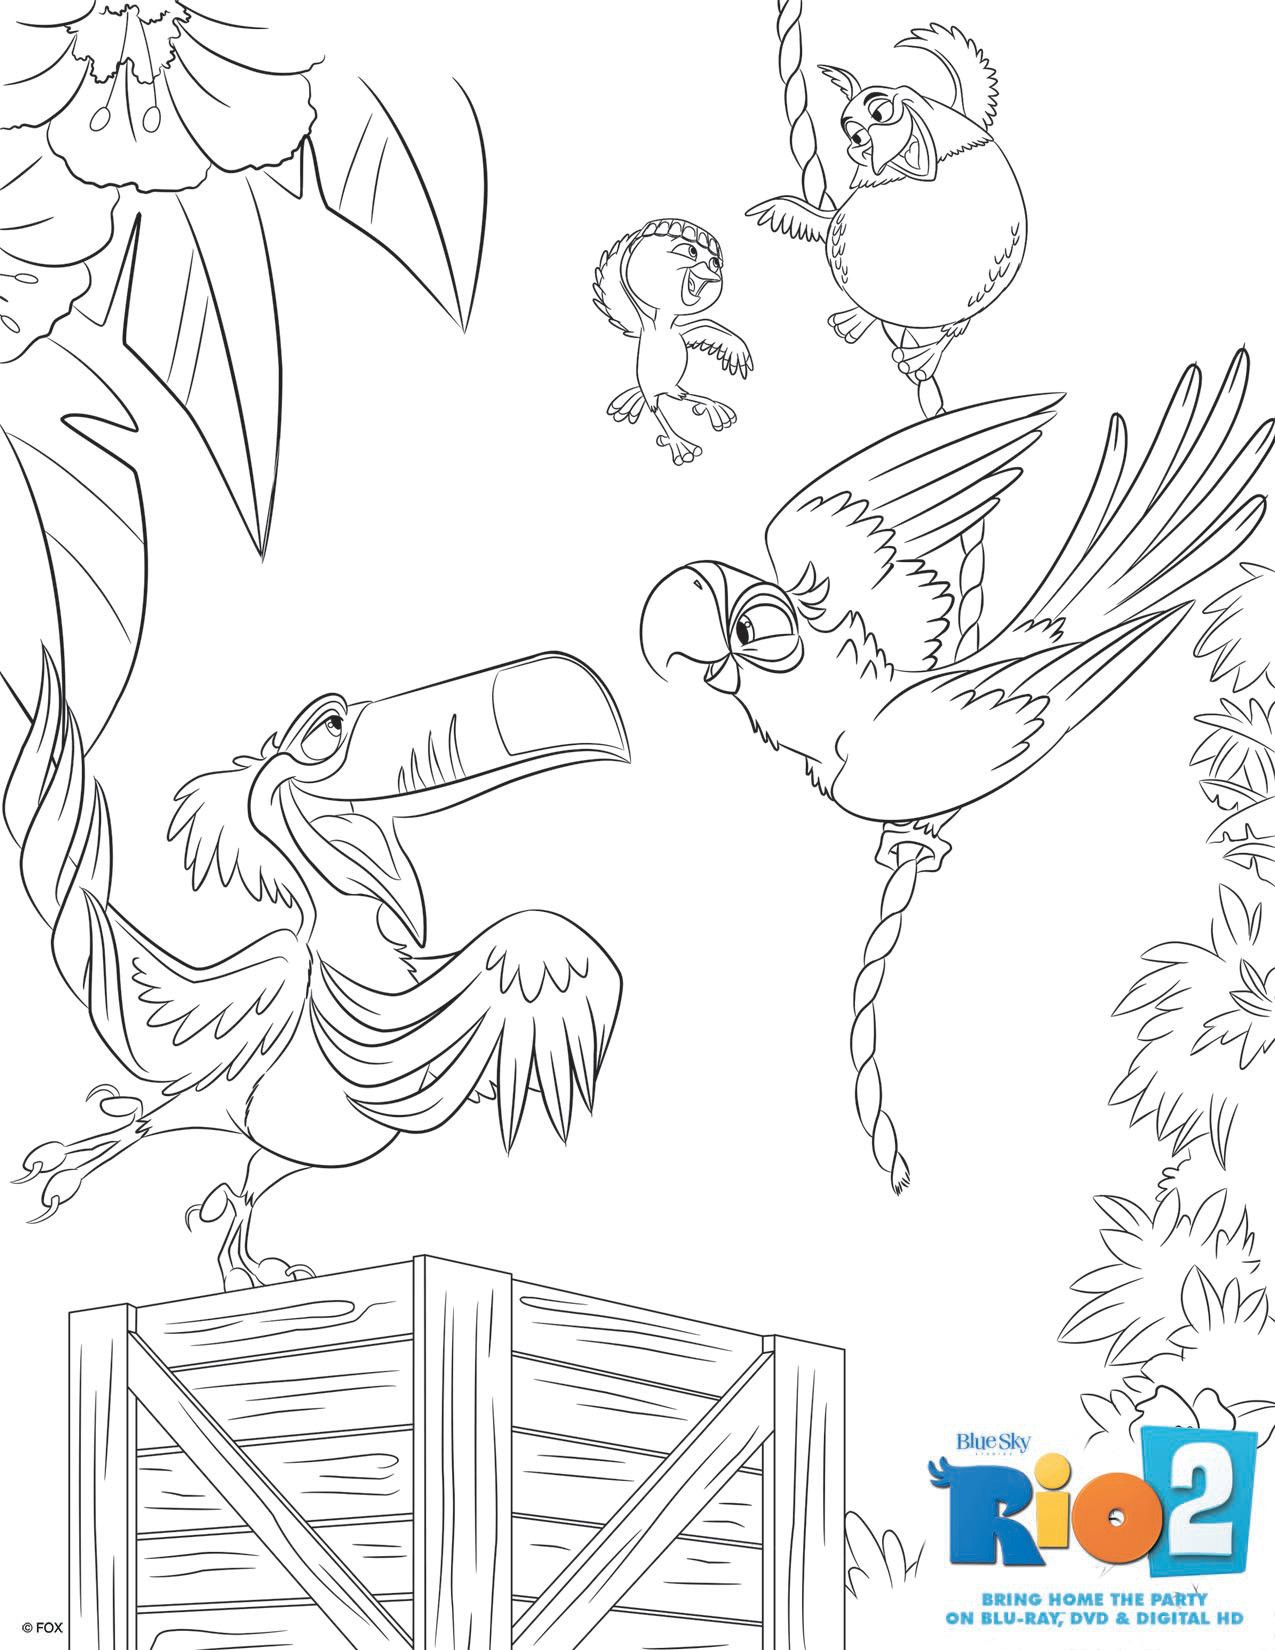 Rio 2 Coloring Pages To Download Part 2 Disney Desenhos